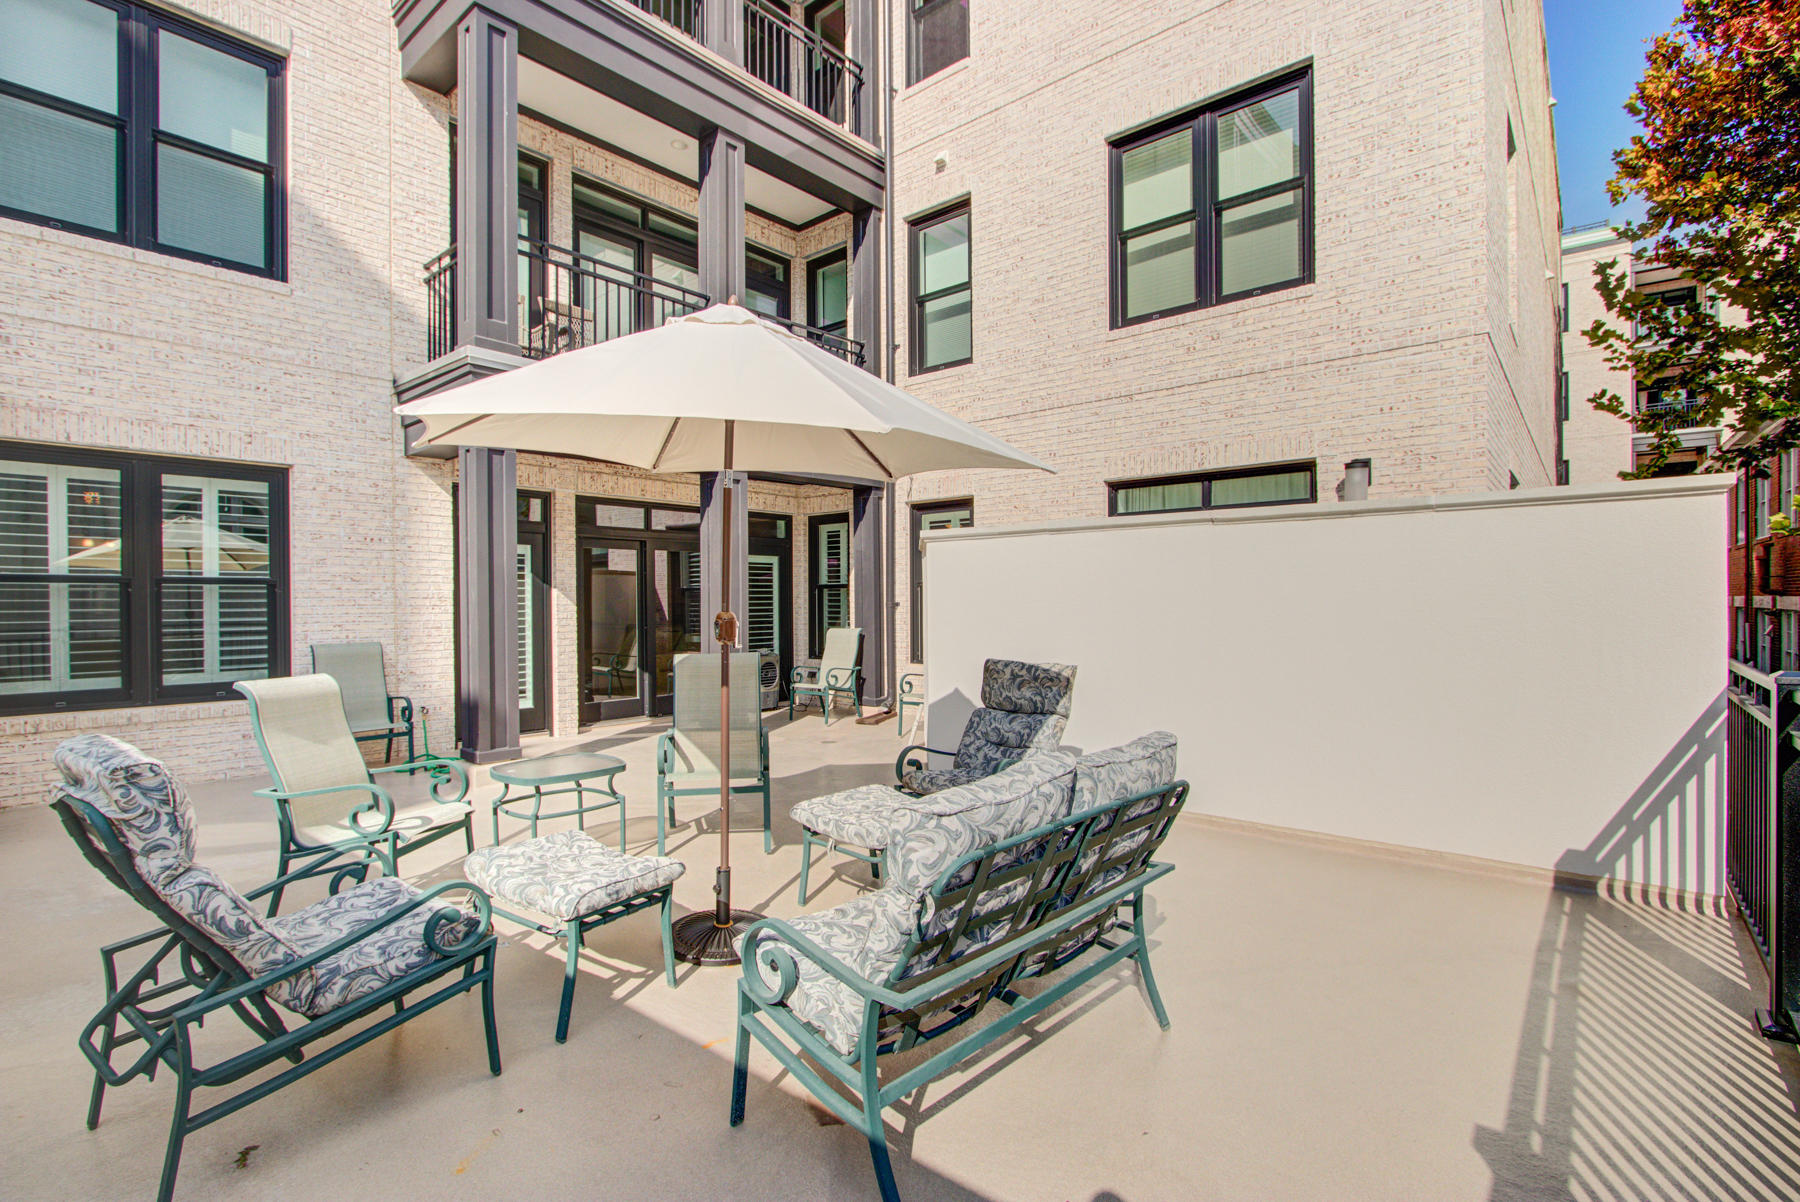 George And Society Condos For Sale - 76 Society, Charleston, SC - 16